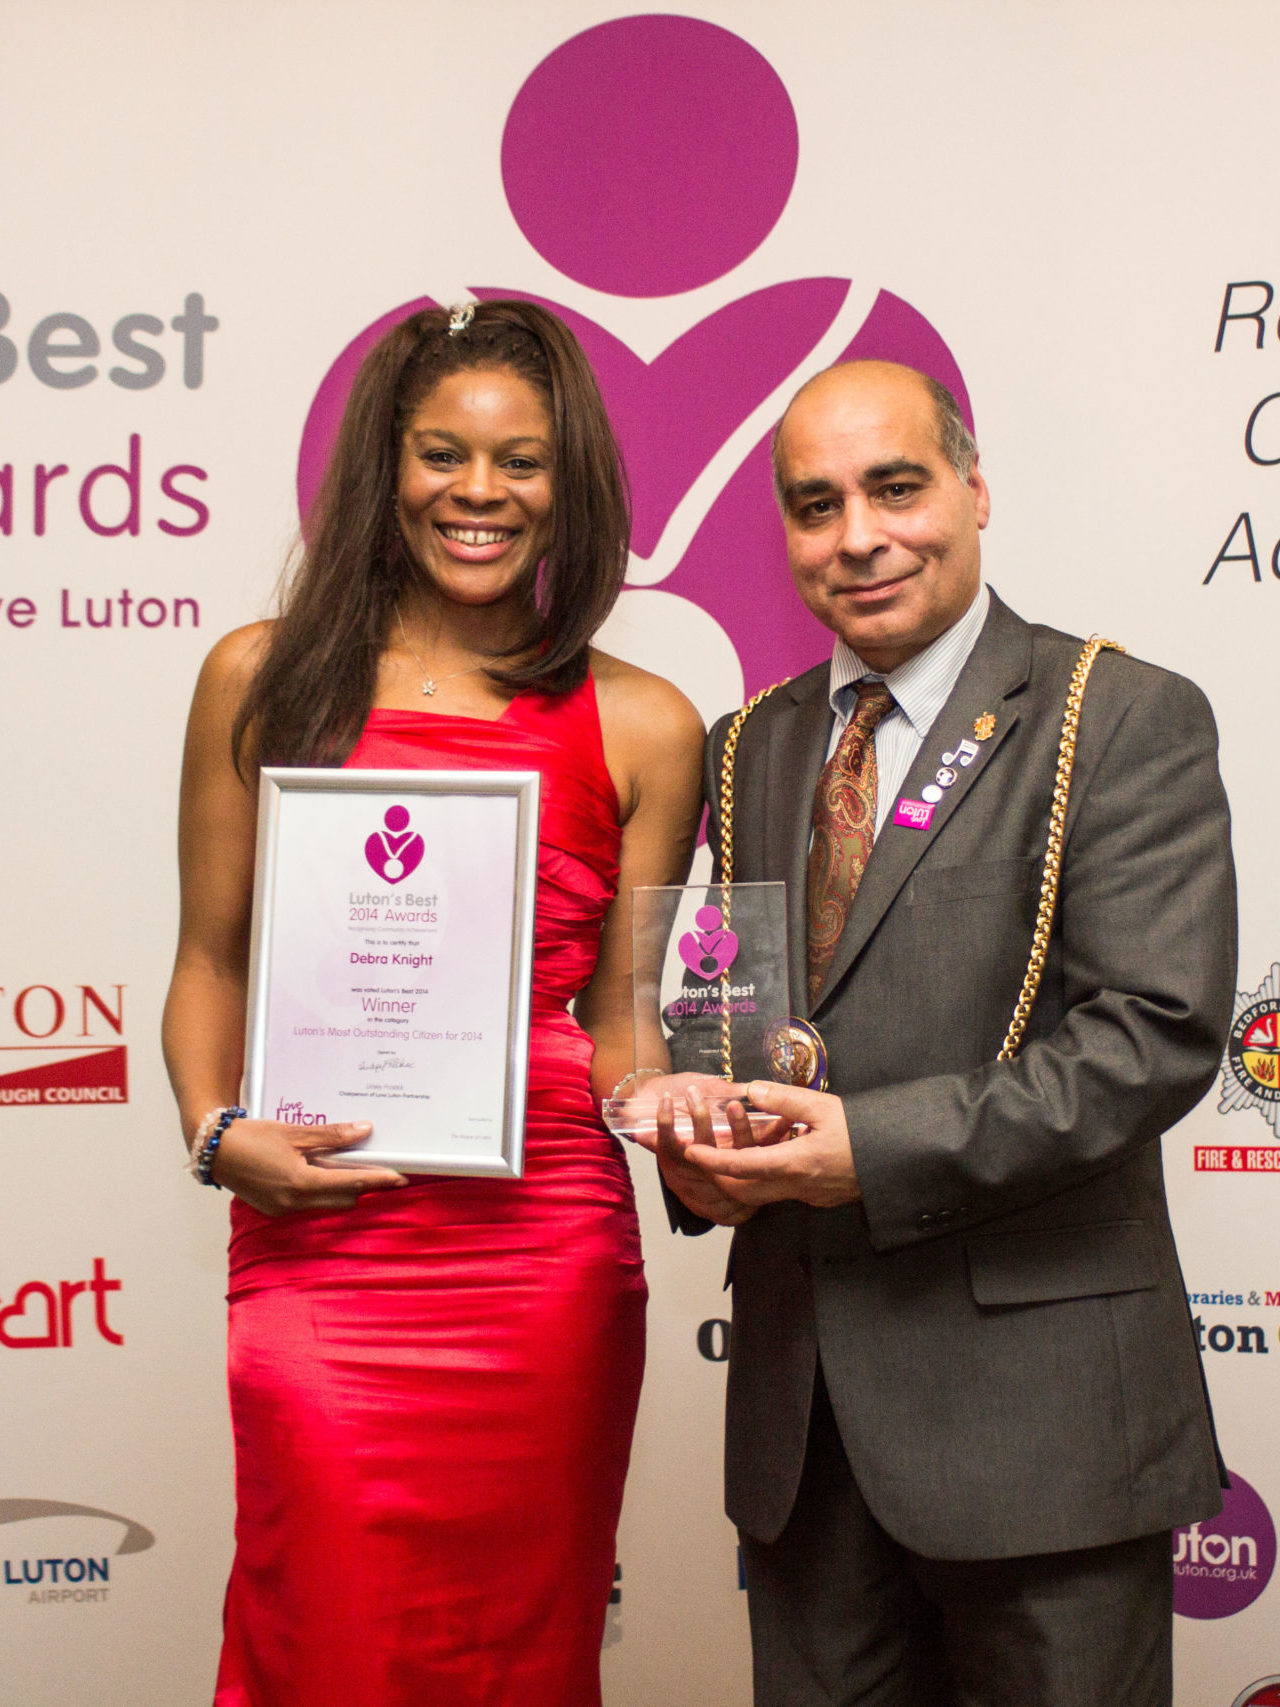 NINE RED Presents / Debra Knight Luton's Best Awards 2014 Most Outstanding Citizen